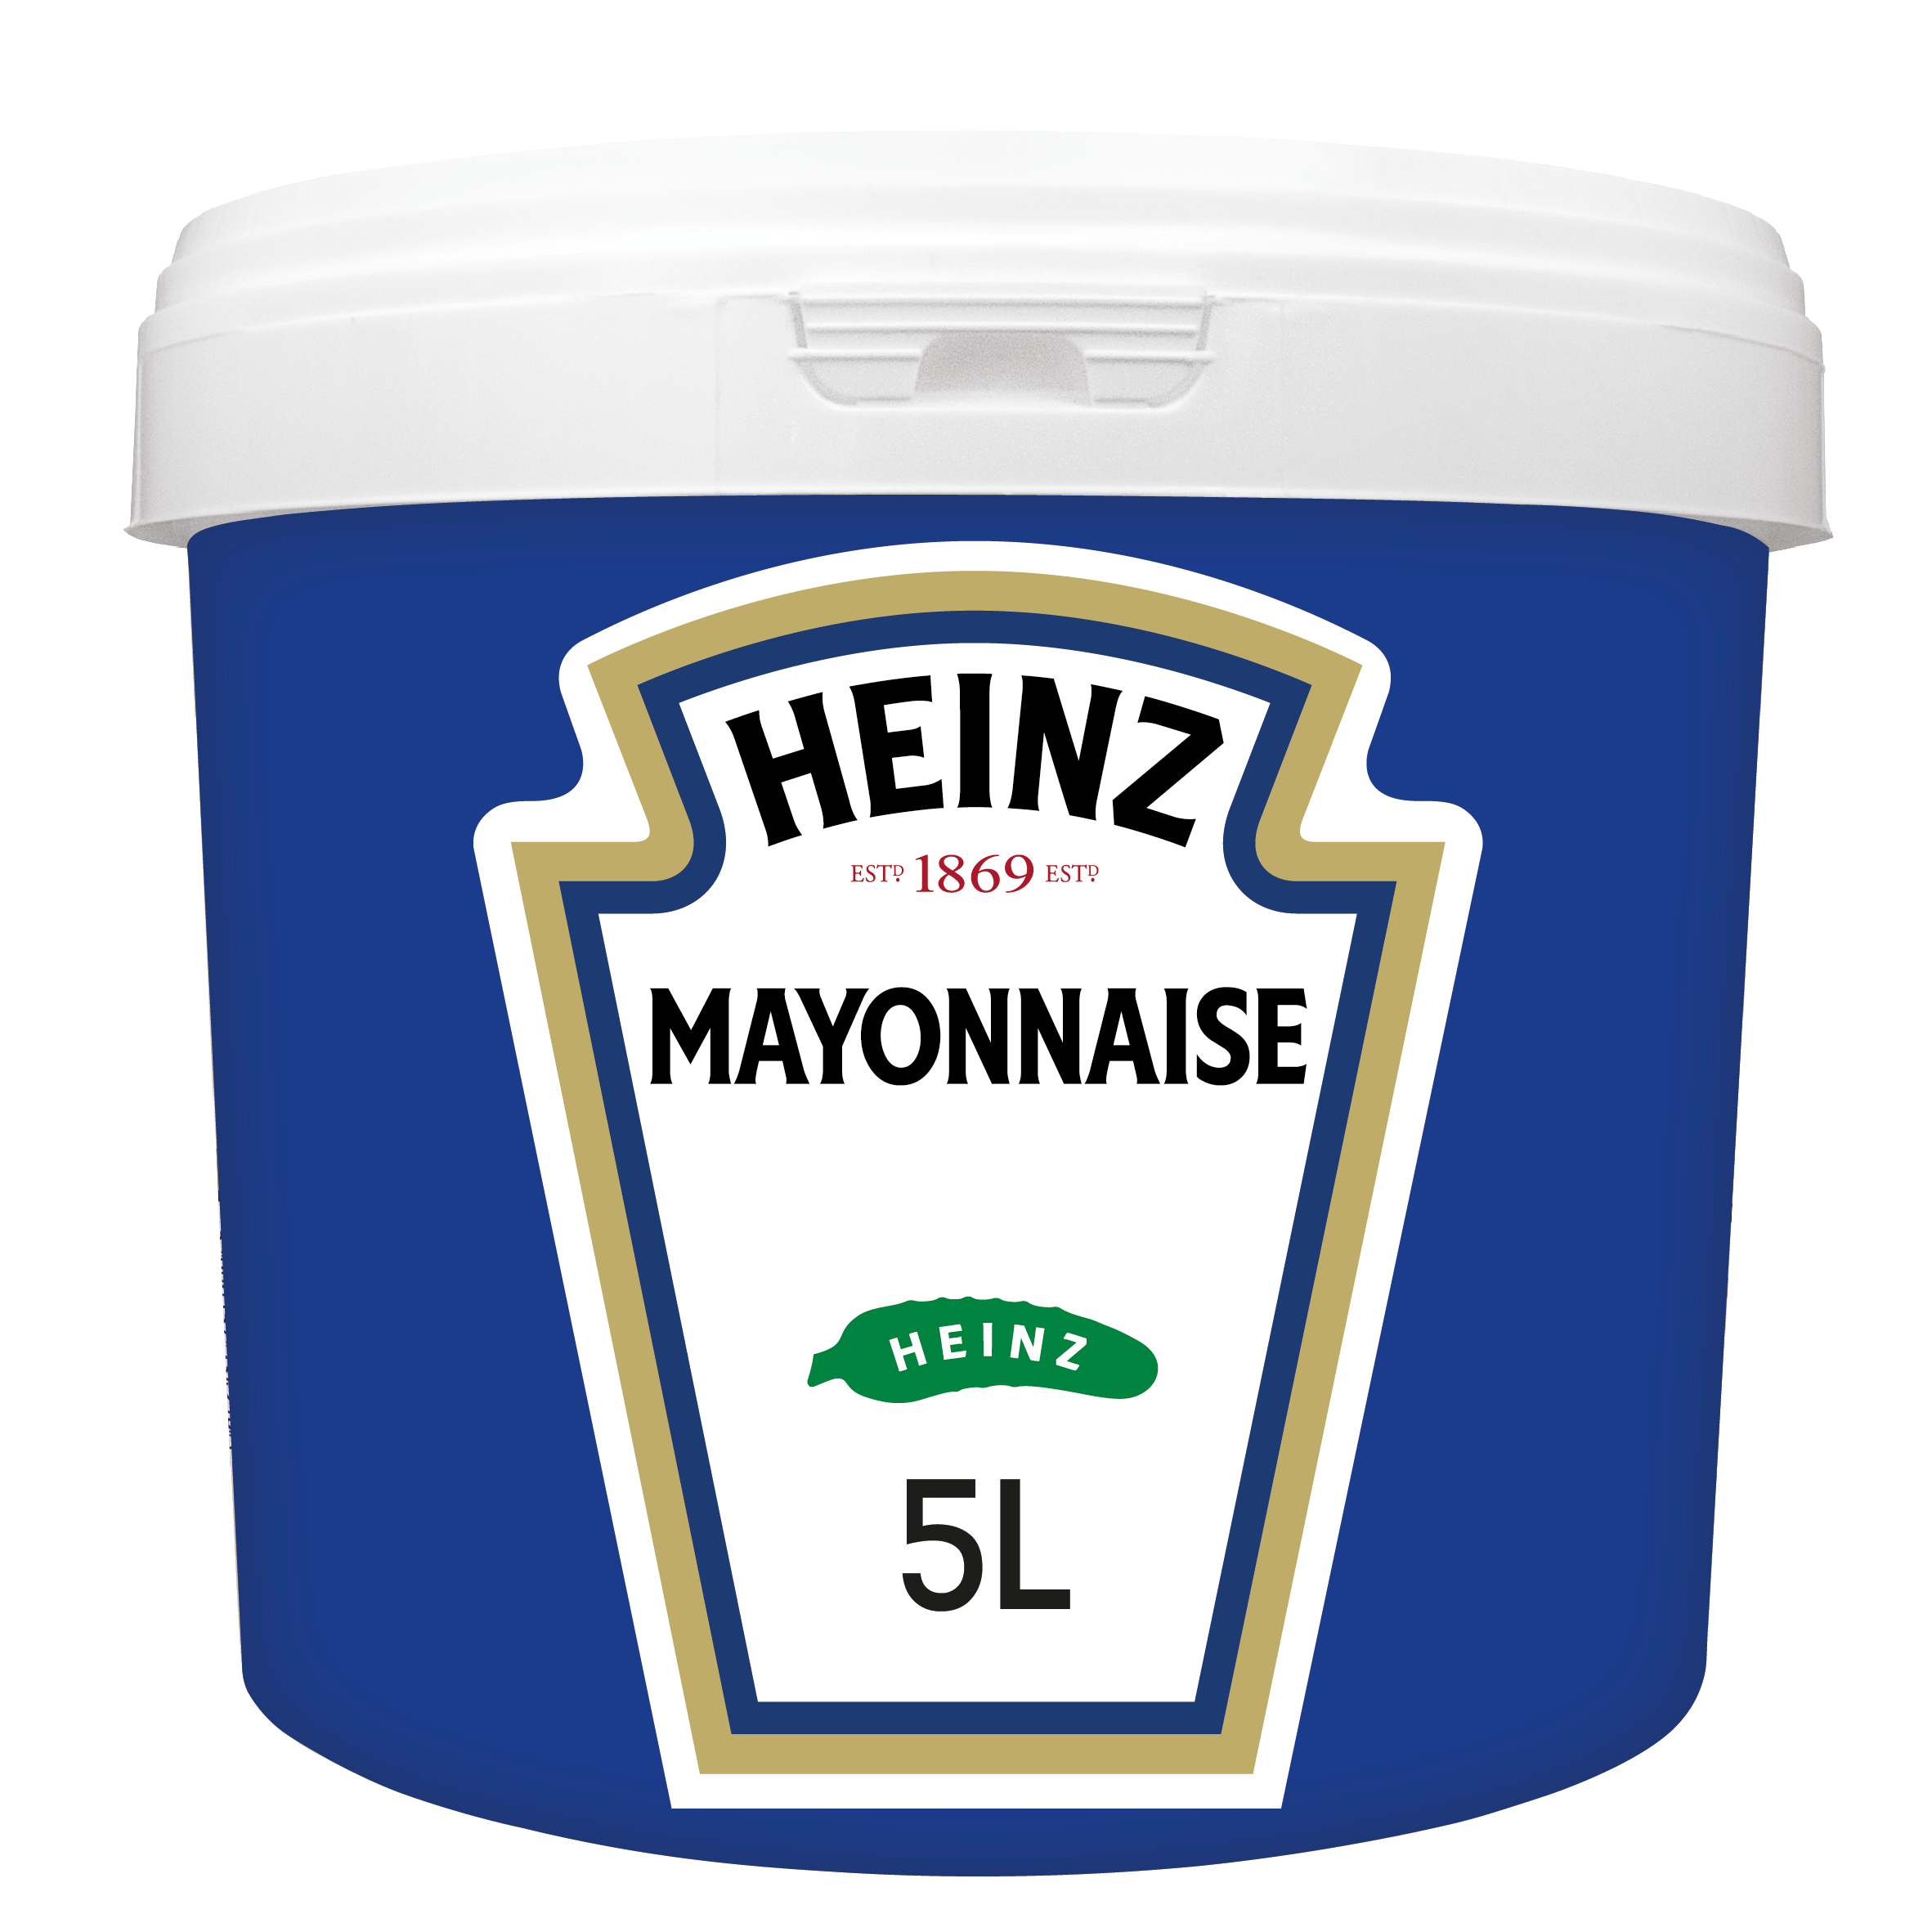 Heinz Mayonnaise 5L image